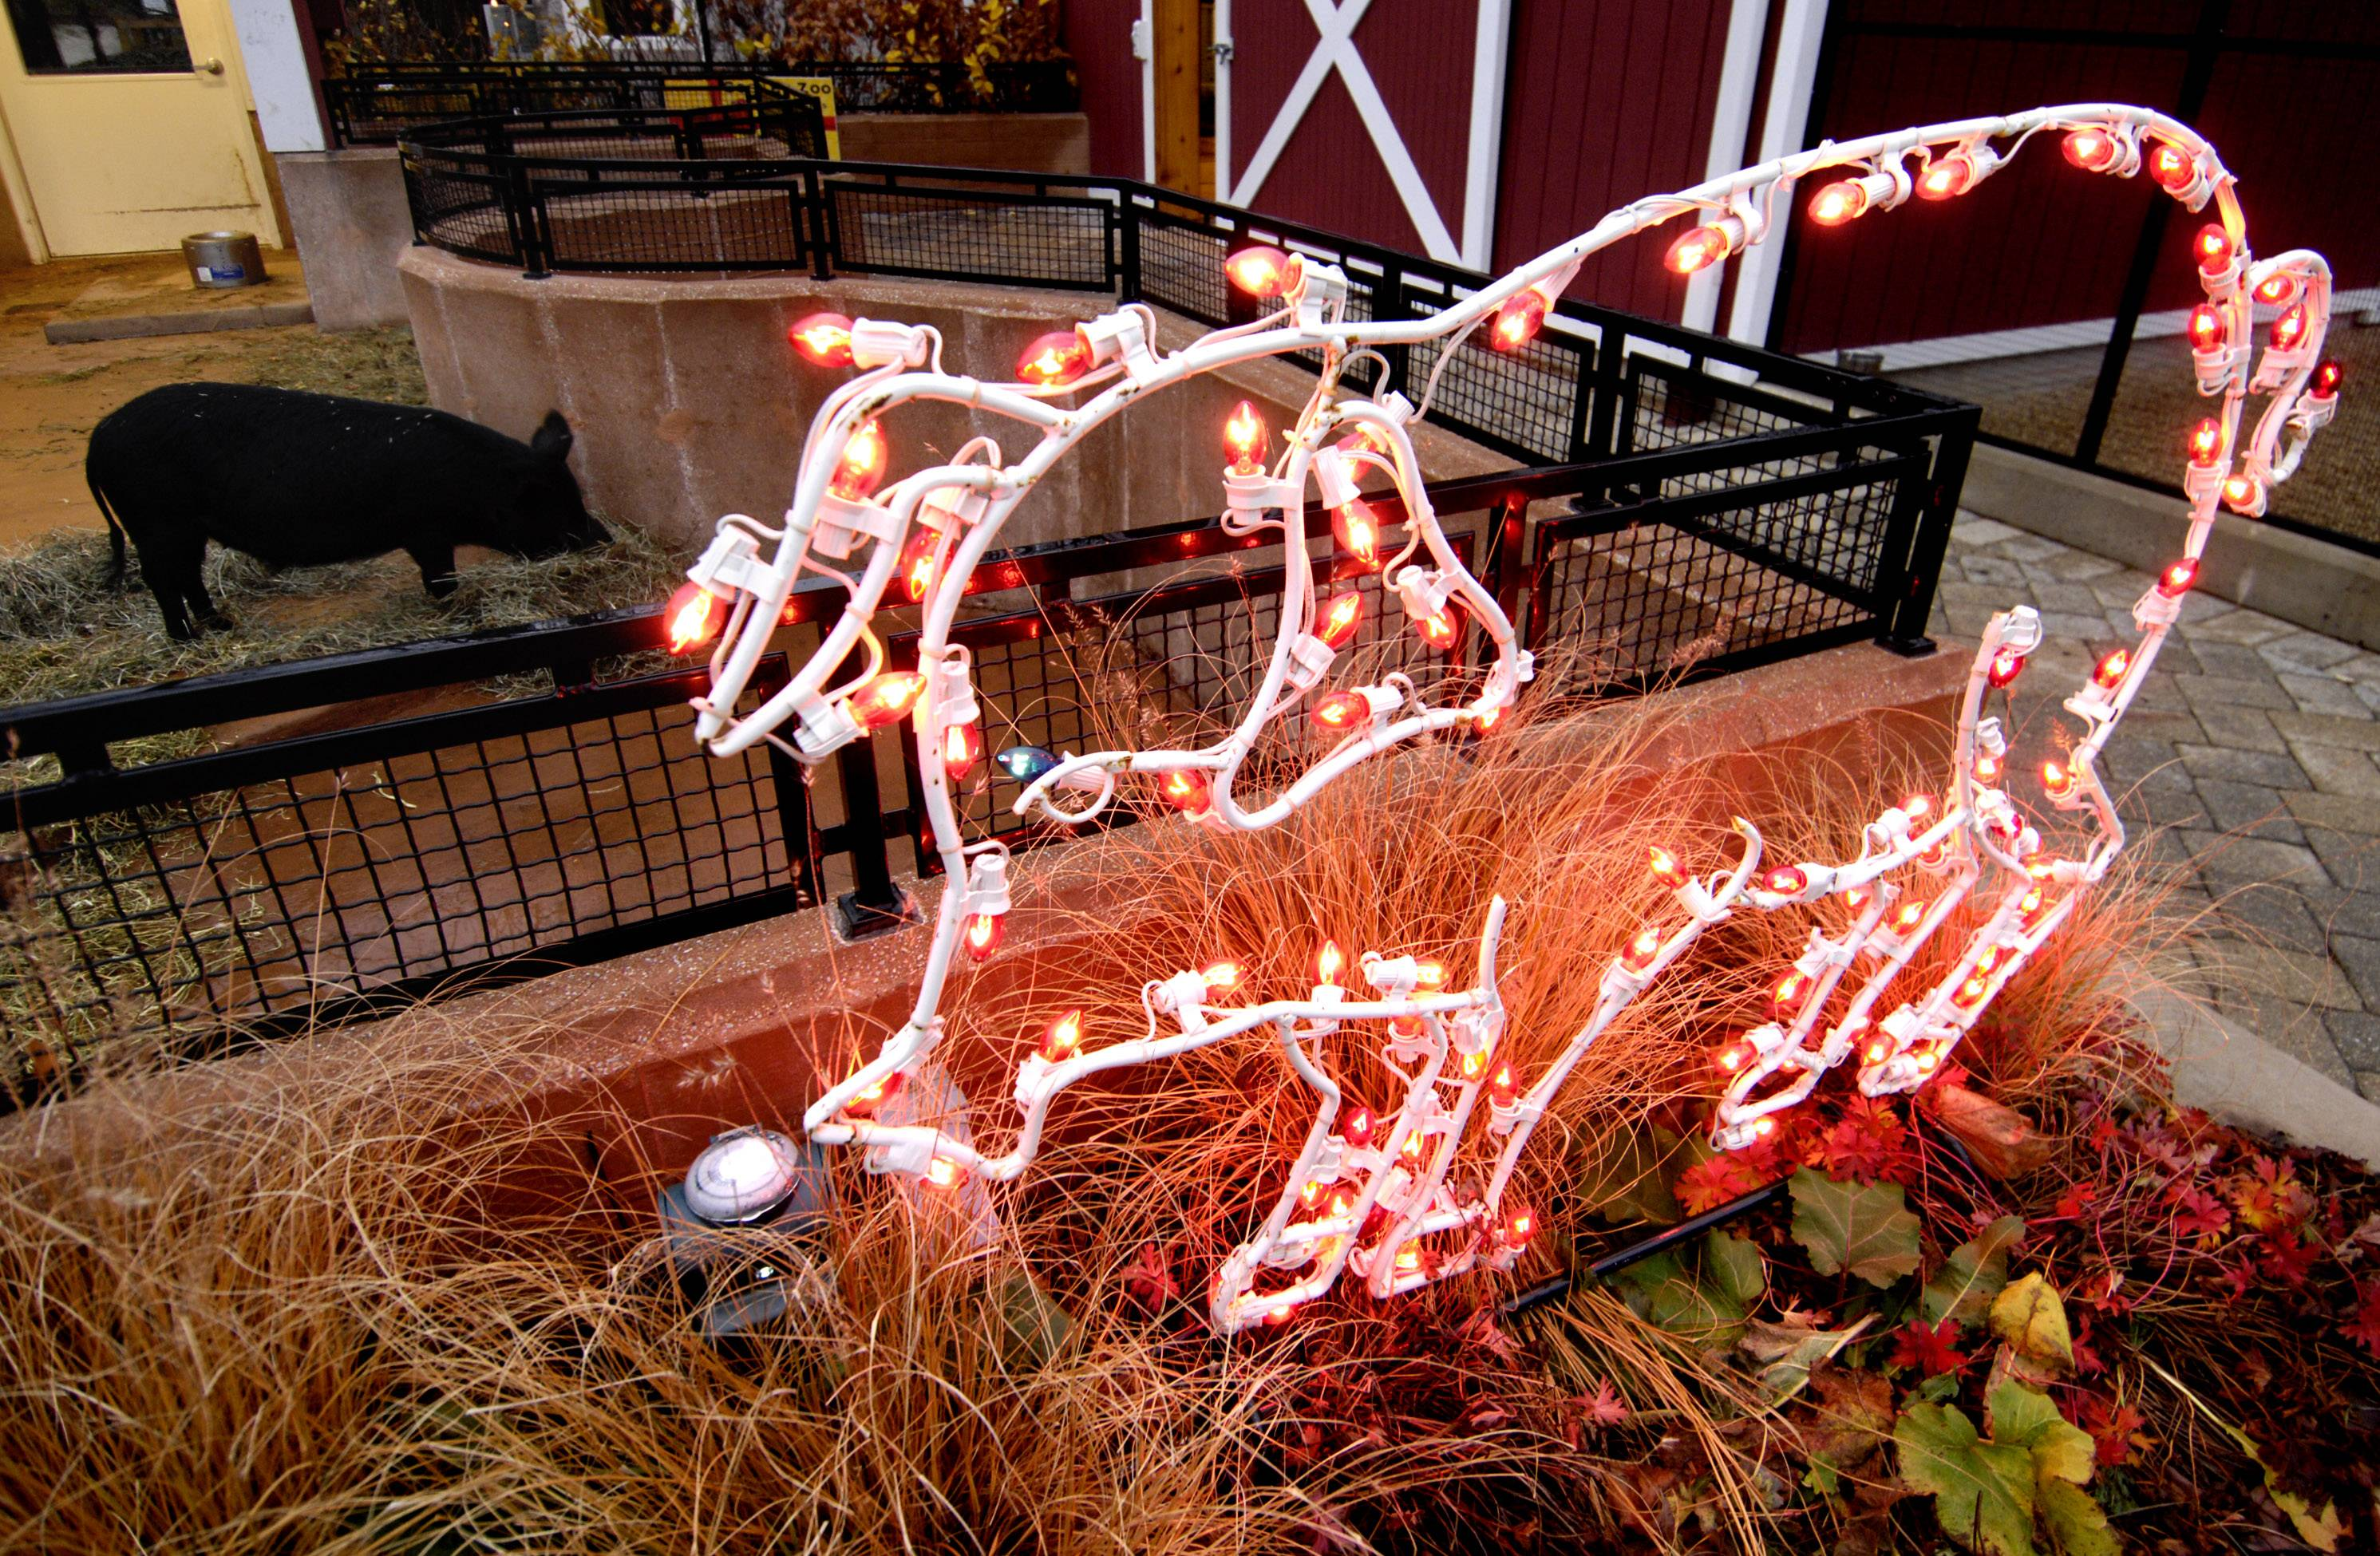 See thousands of holiday lights and displays at the annual Festival of Lights at the Cosley Zoo.